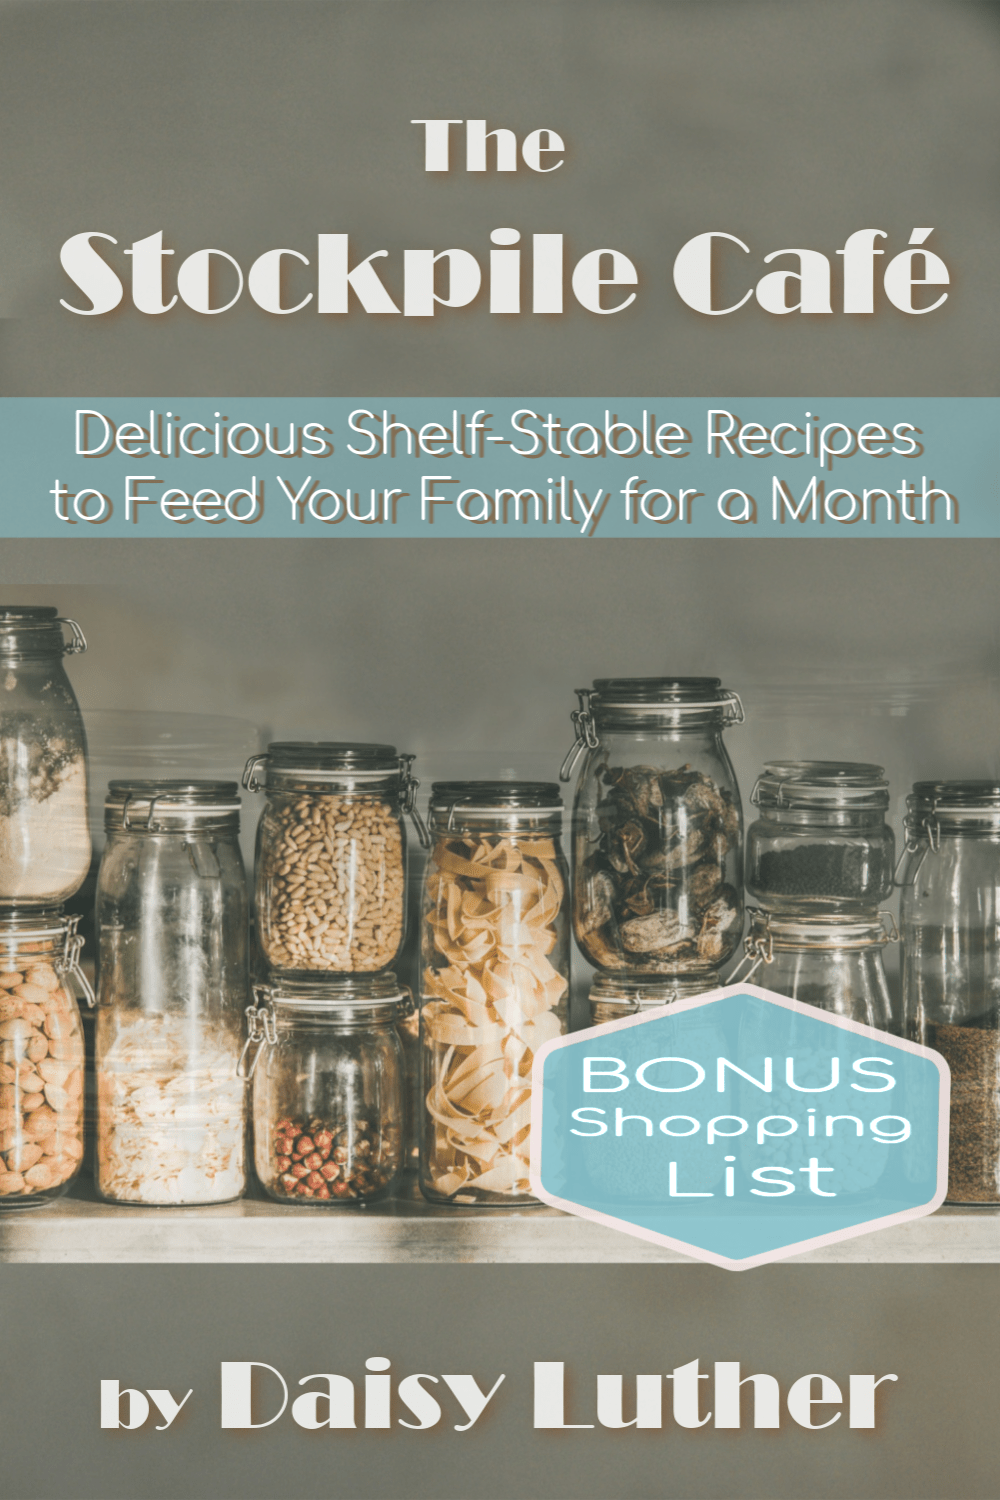 The Stockpile Cafe